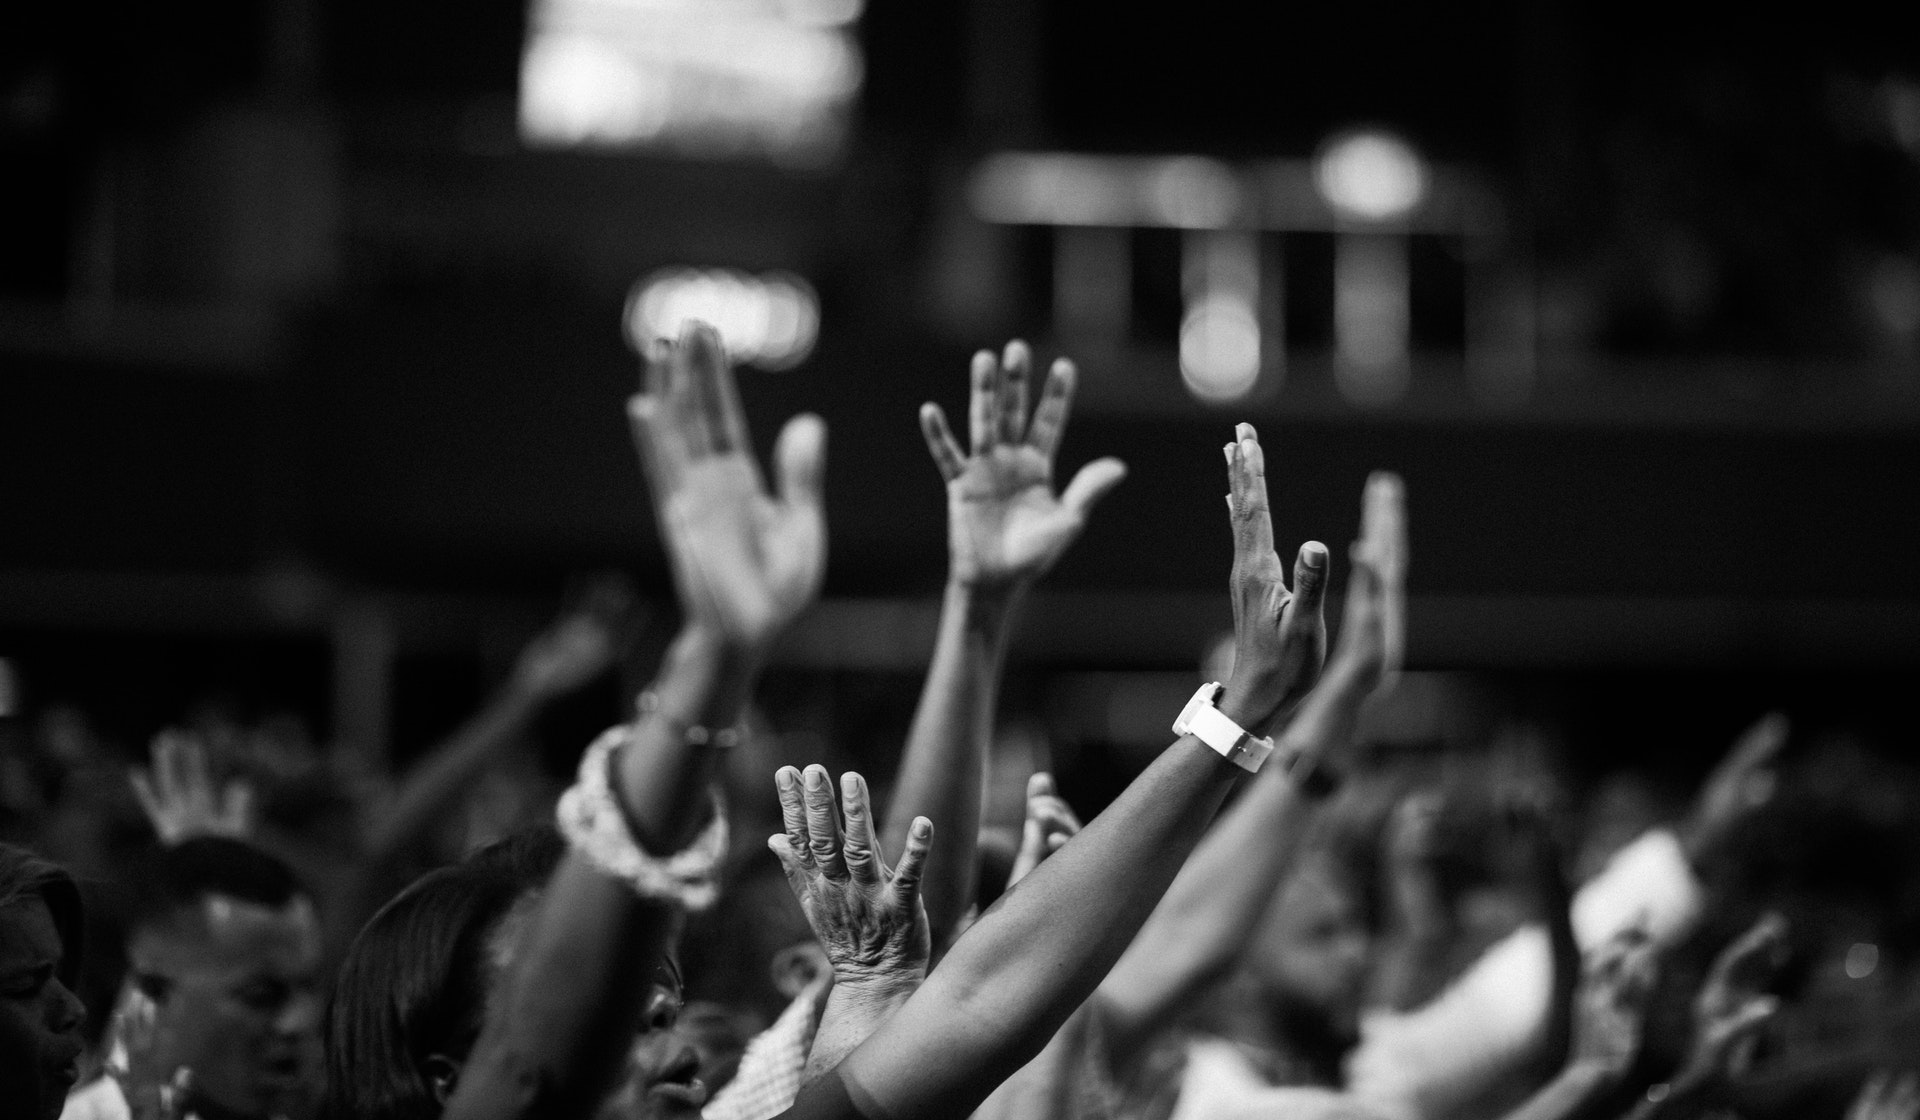 audience-black-and-white-blur-2014775